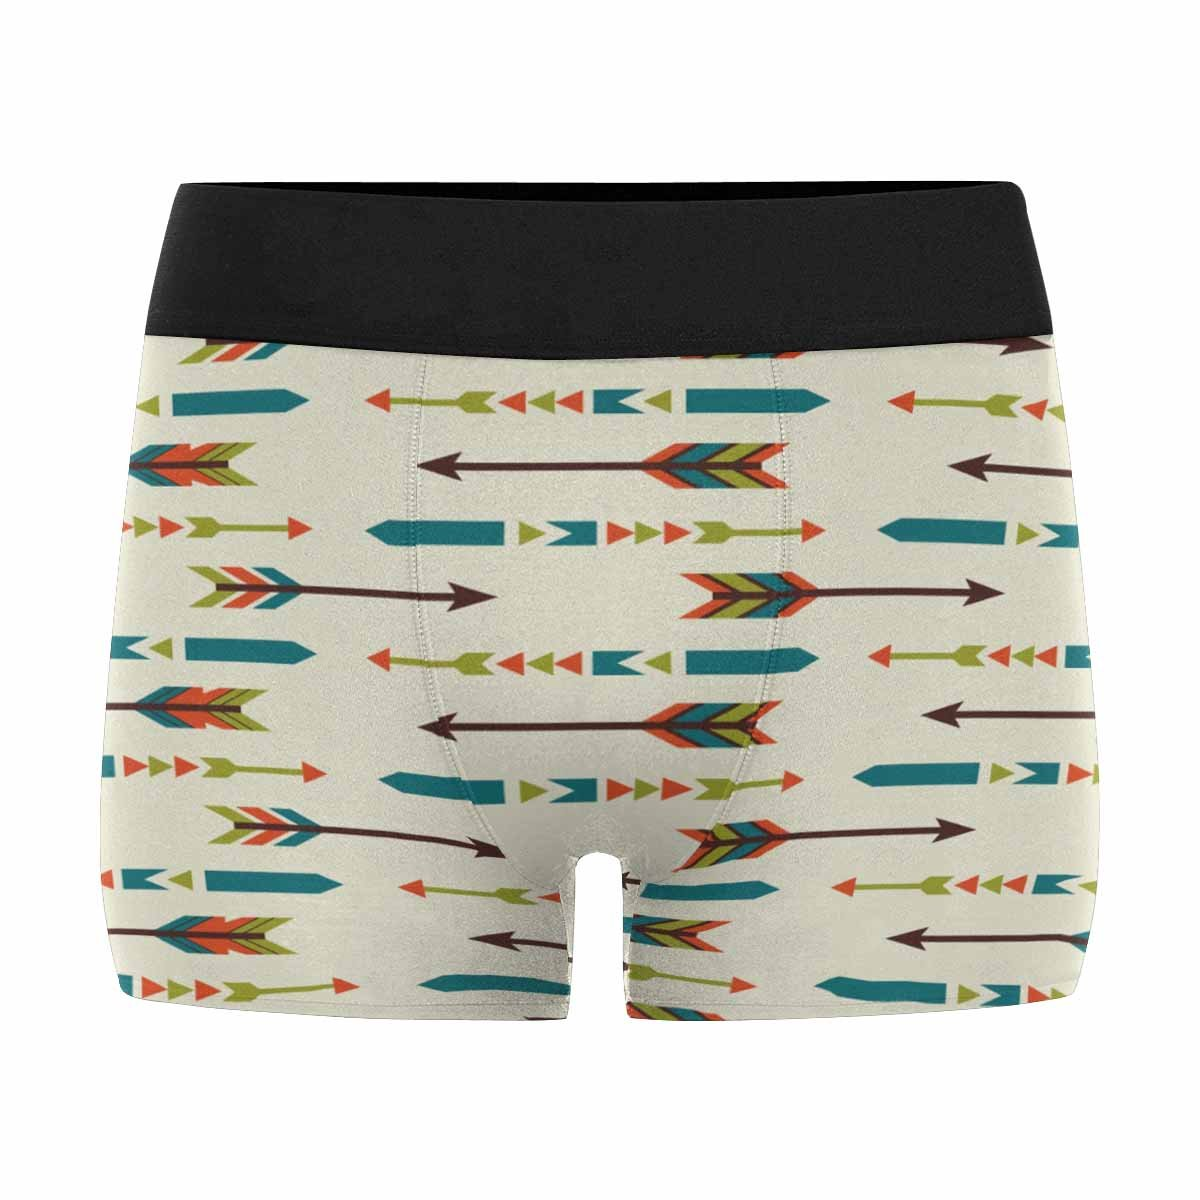 INTERESTPRINT Custom Mens Boxer Briefs Ethnic Arrows Pattern Design XS-3XL